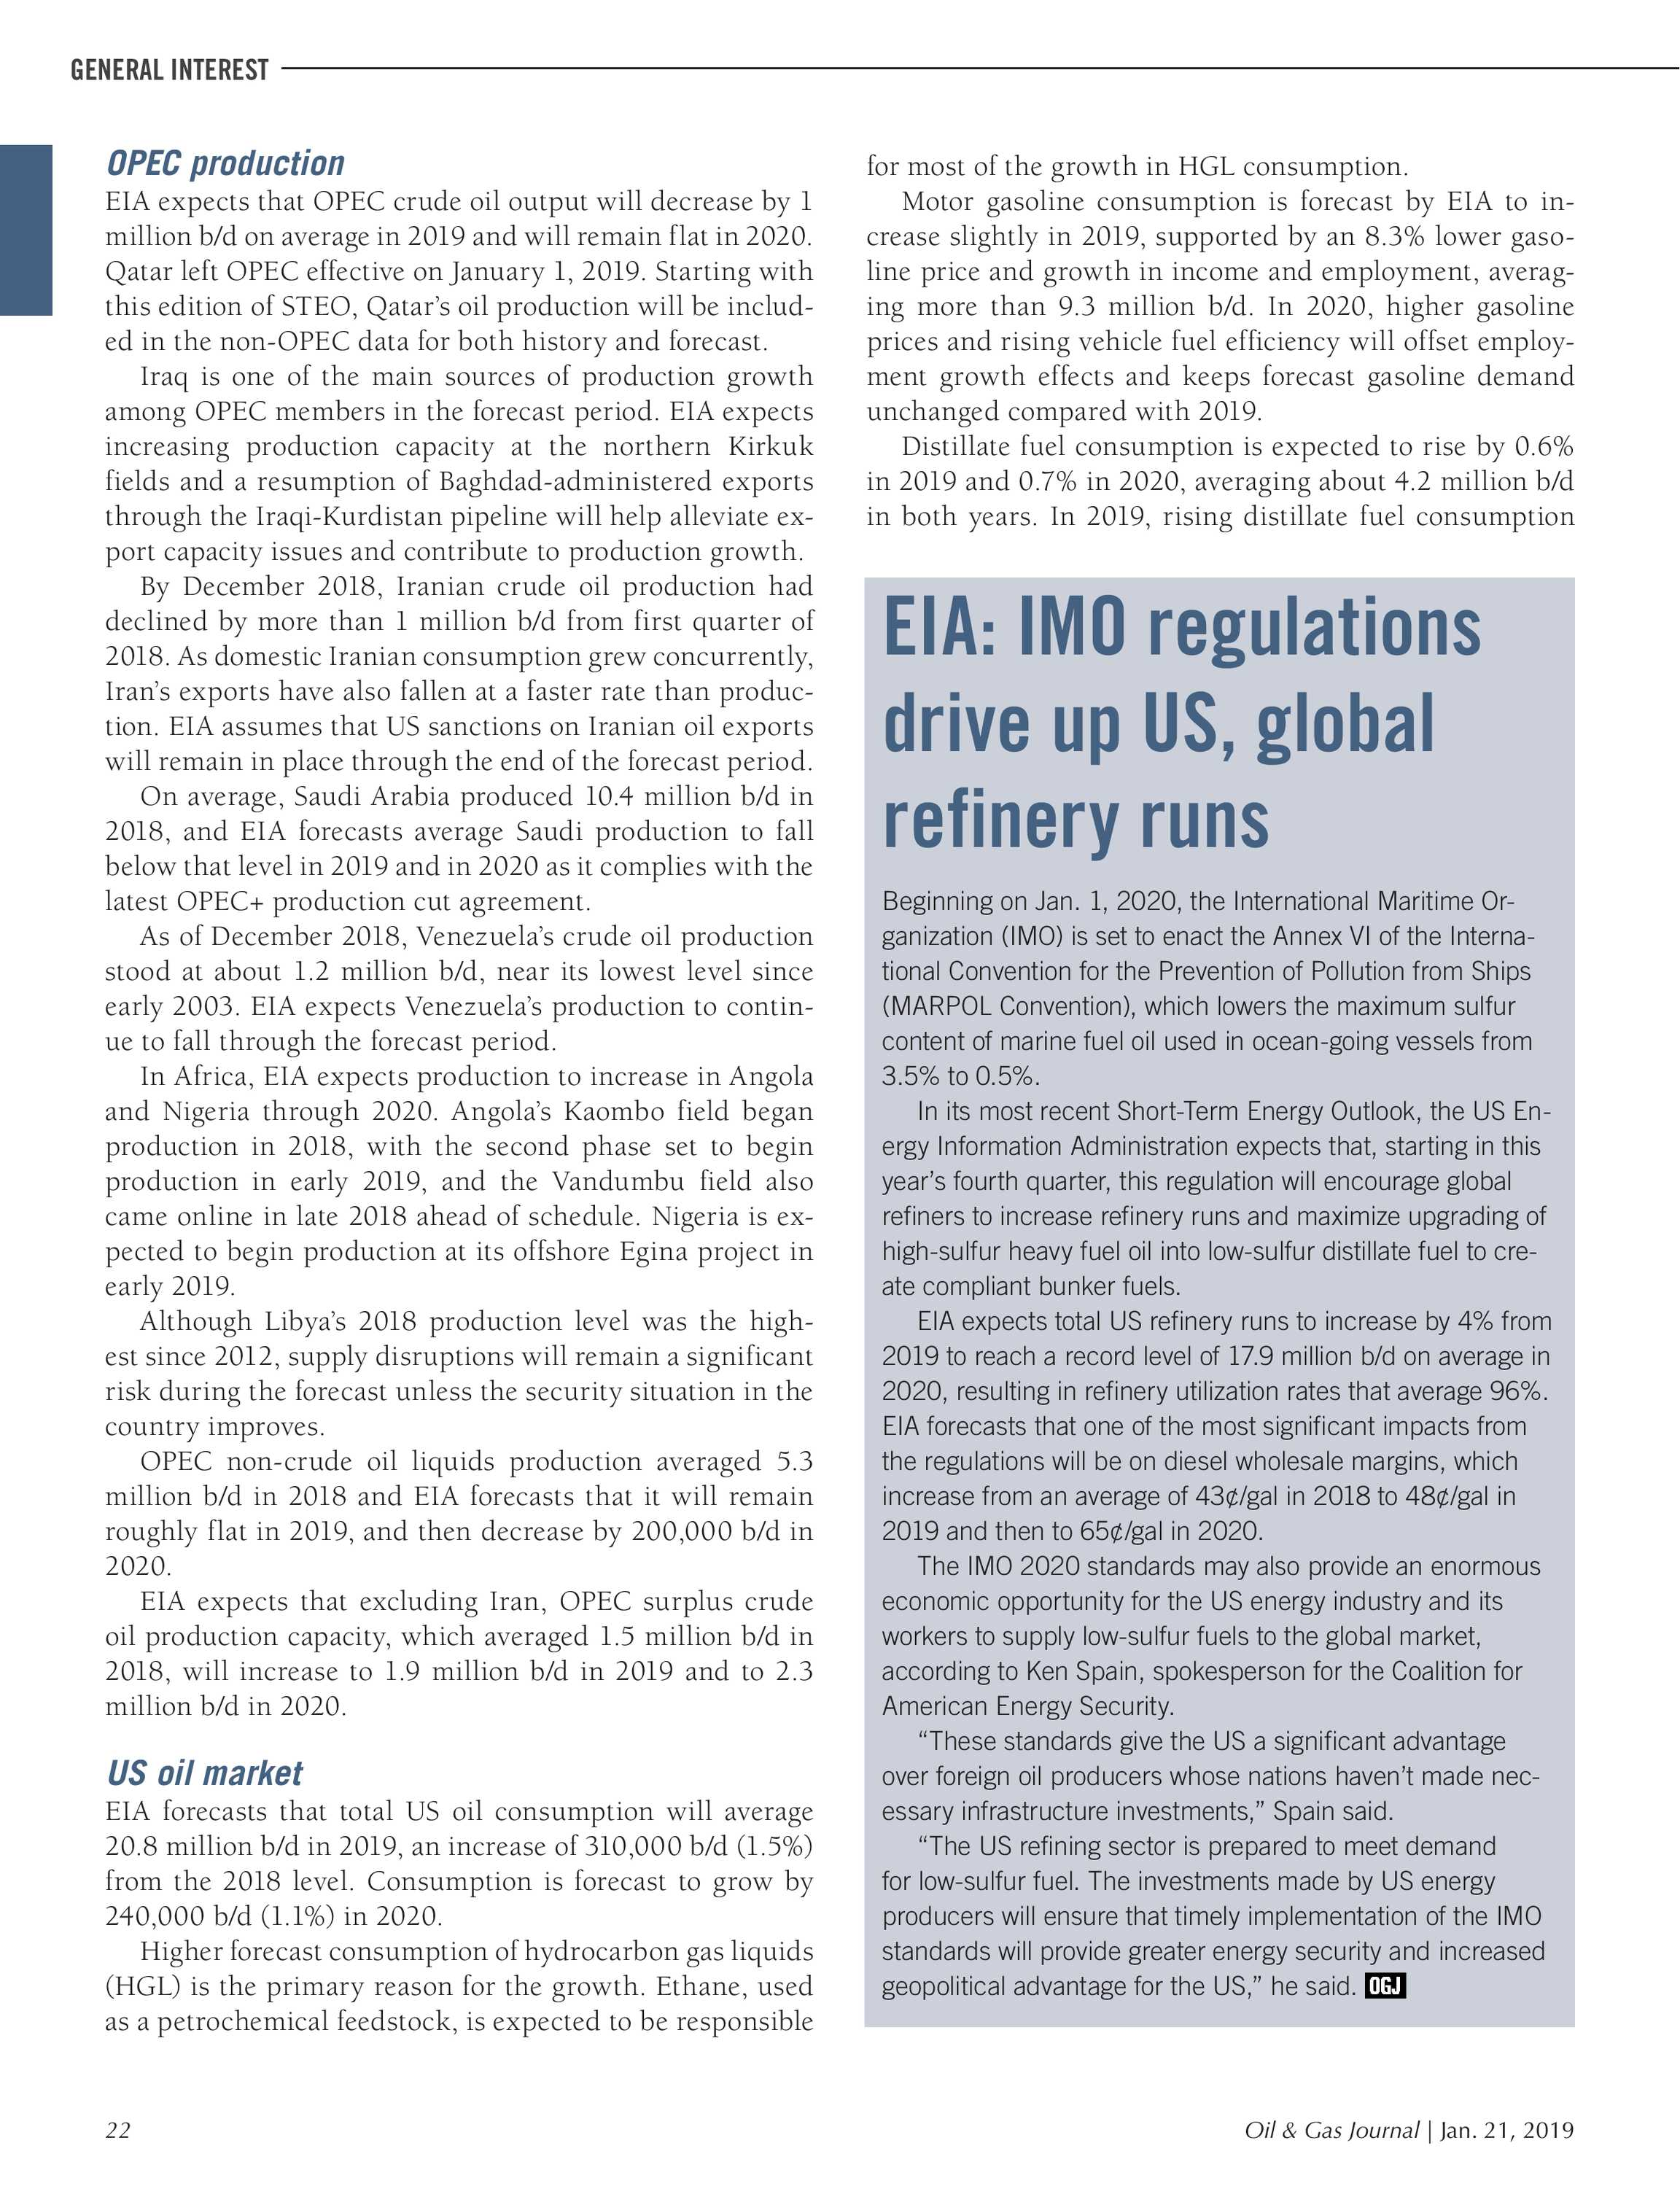 Oil & Gas Journal - January 21, 2019 - page 22